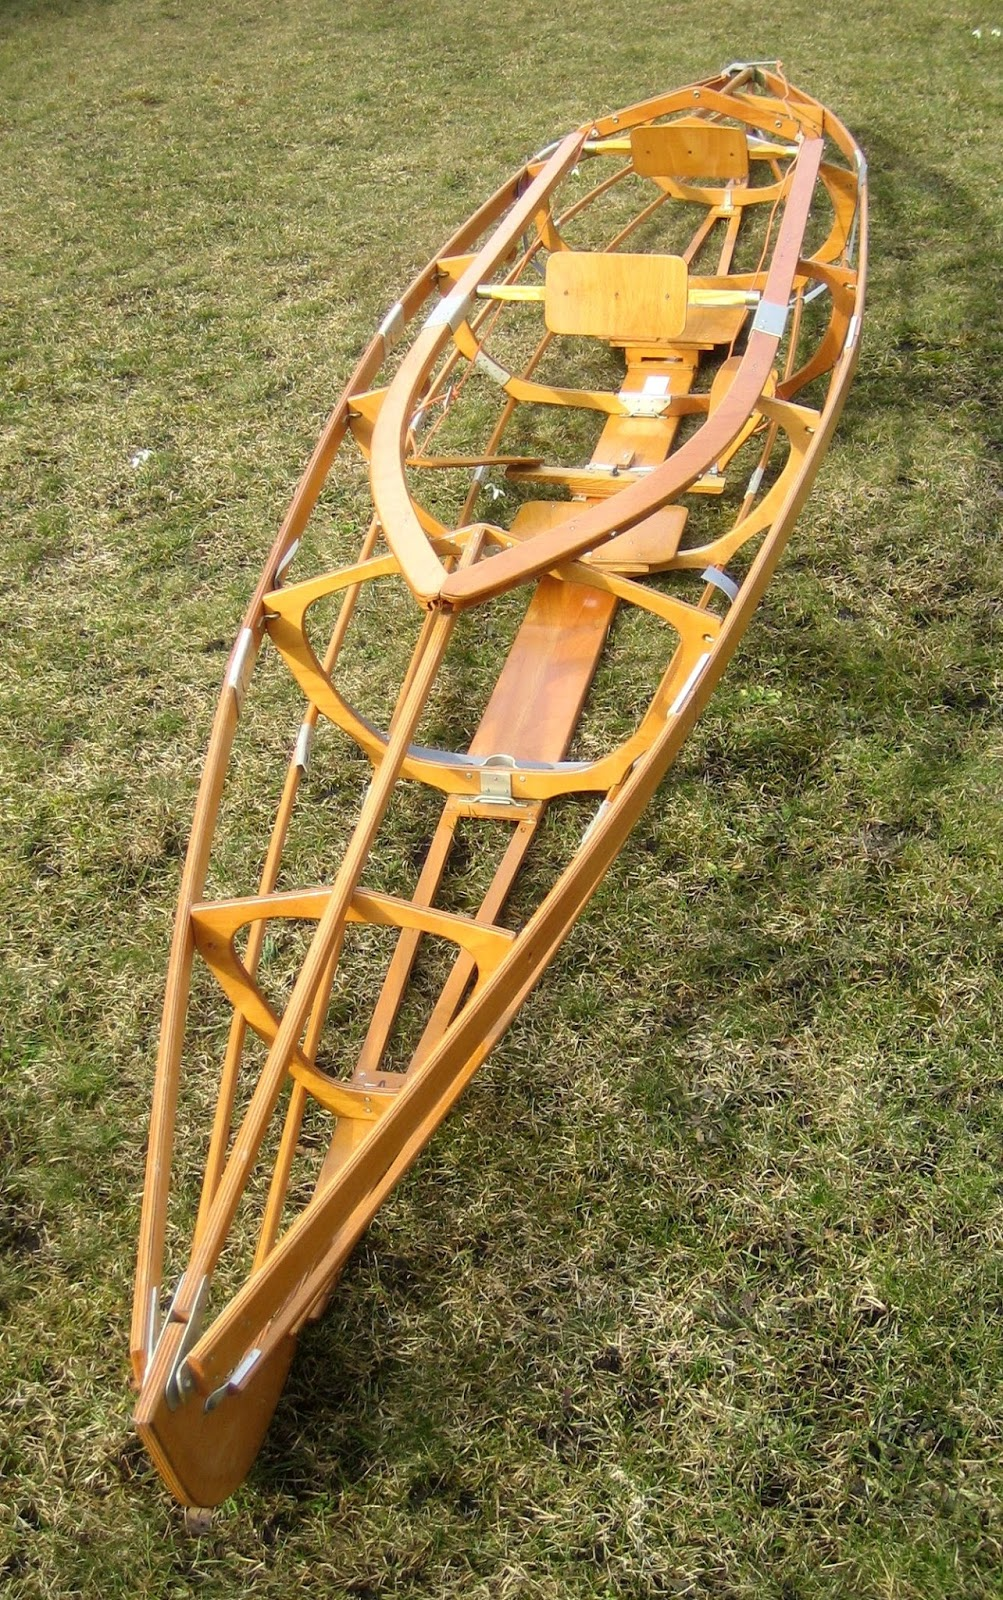 Frame of a Klepper folding kayak. The sections are similar to those of